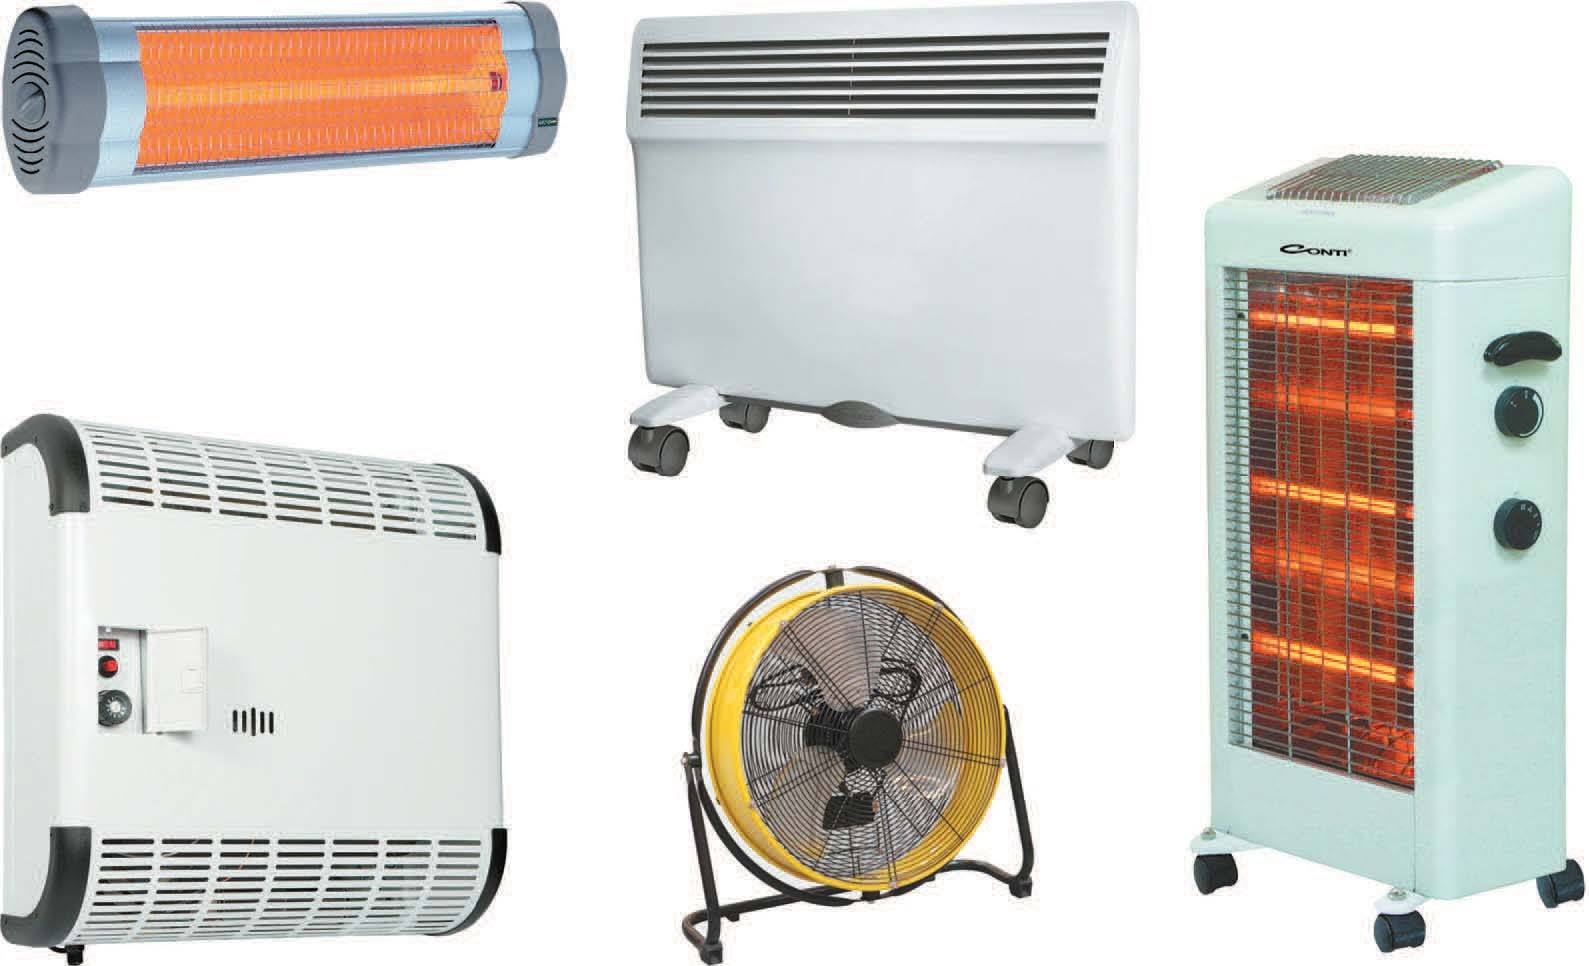 Top 10 Best Room Heaters - Review & Buying Guide